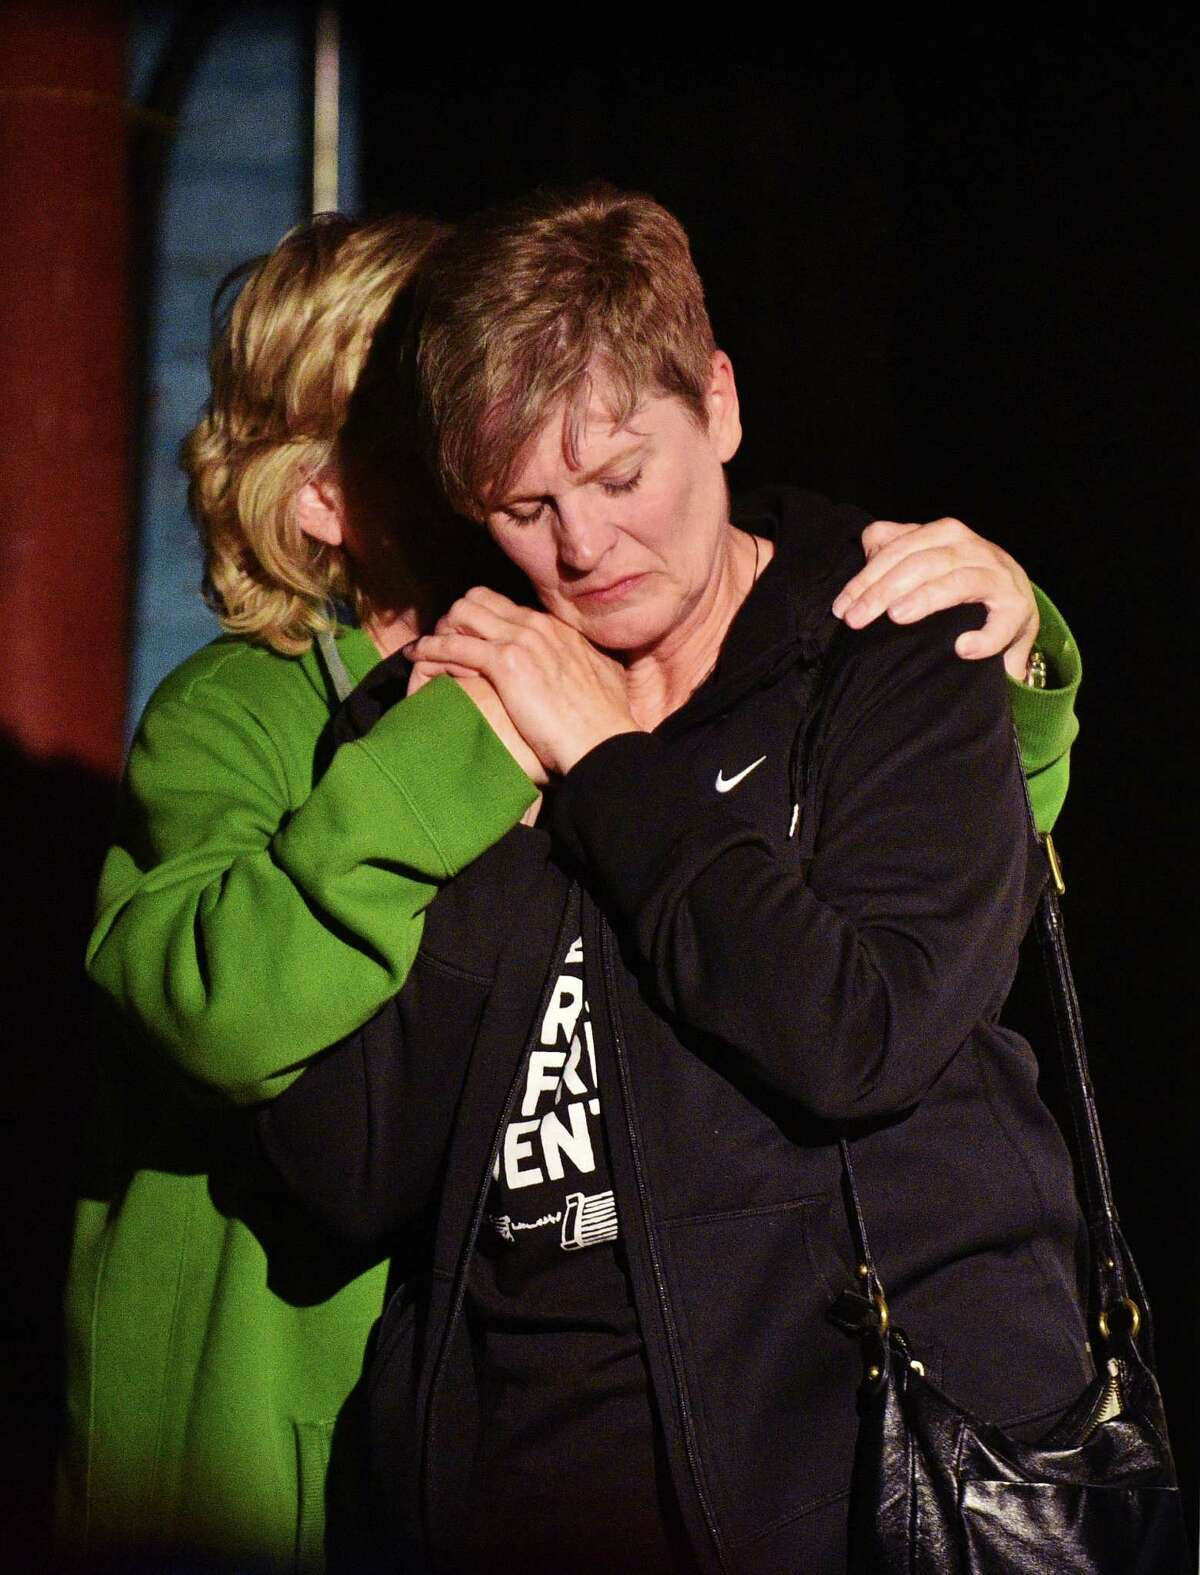 """Cathy McMullen, president of the Denton Drilling Awareness Group hugs Sharon Wilson, an organizer with the group Earthworks, on stage at an election watch party at Dan's Silverleaf to see the results of propositions to ban hydraulic fracturing within the City of Denton and to remove the private club rules for alcohol sales and make Denton an officially """"wet"""" city, Tuesday, Nov. 4, 2014, in Denton, Texas. (AP Photo/Denton Record-Chronicle, David Minton)"""